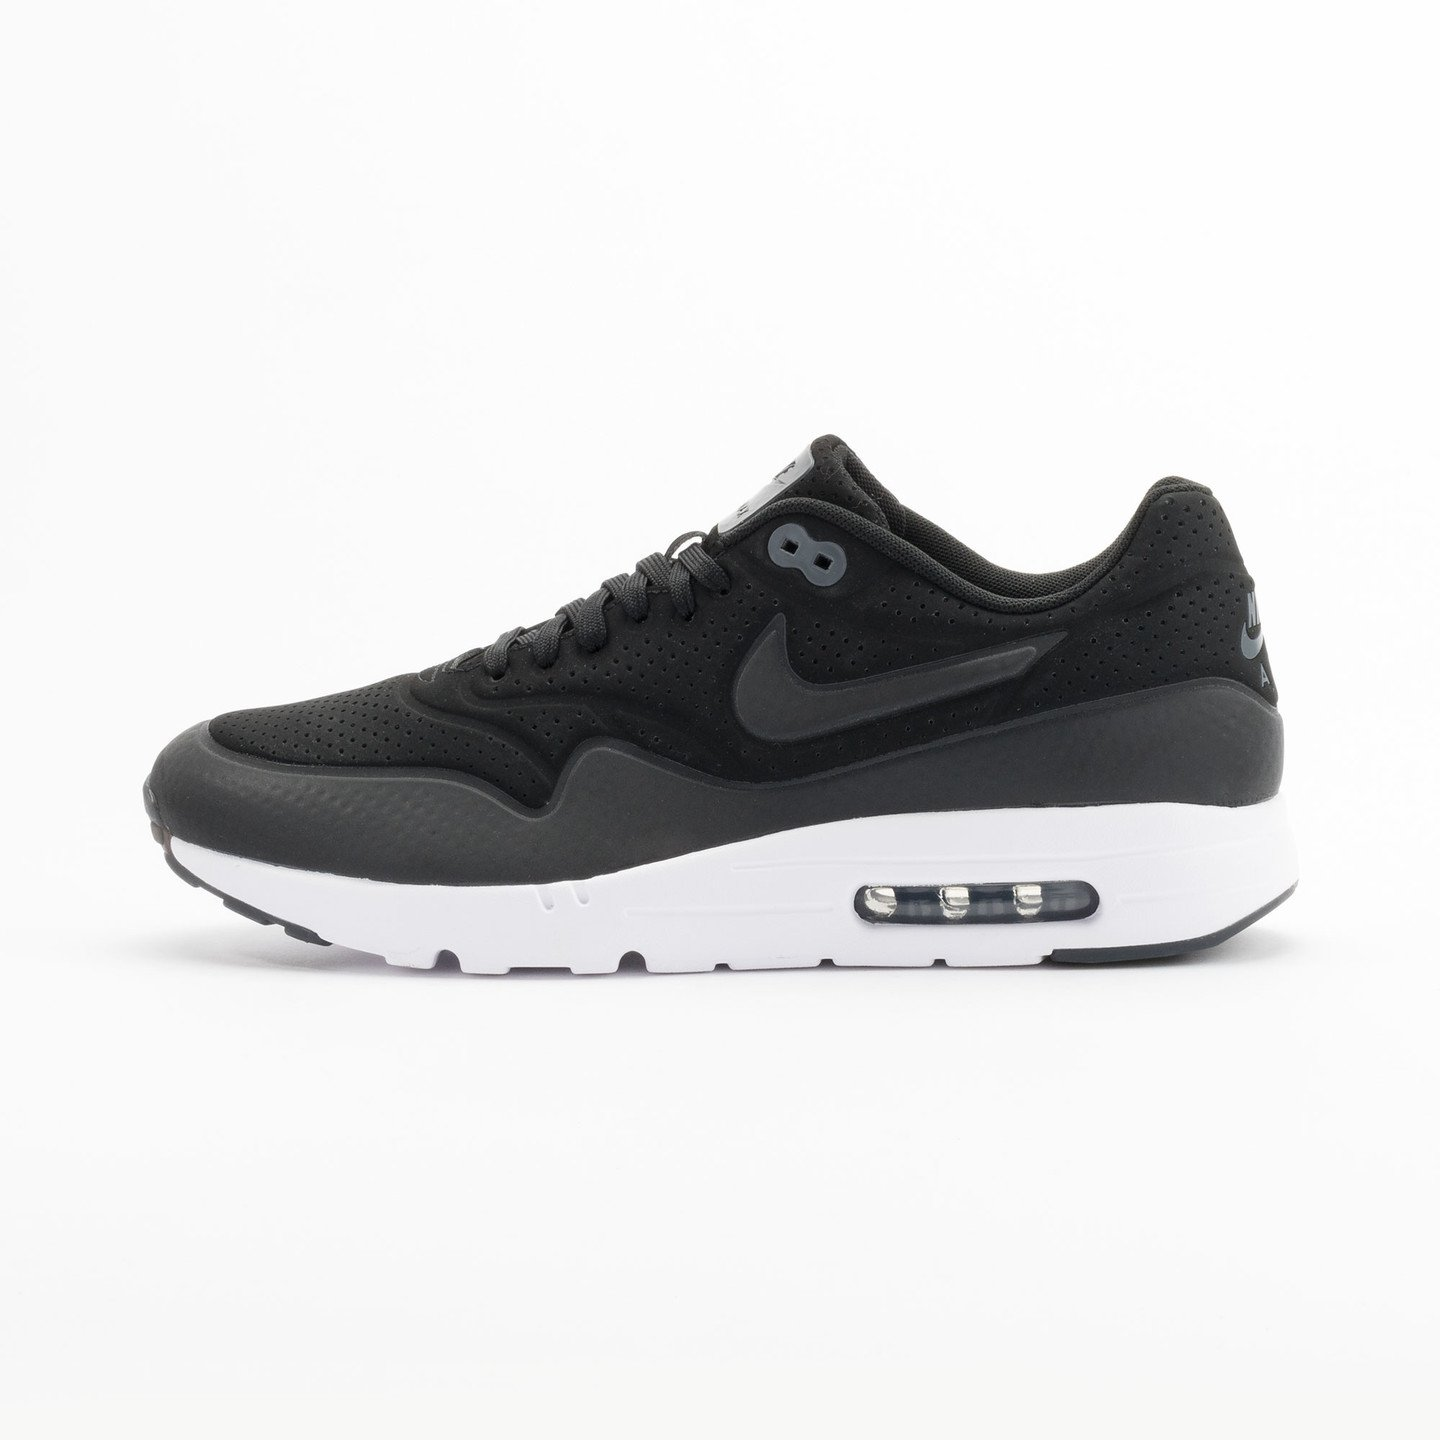 Nike Air Max 1 Ultra Moire Black Reflective / White 705297-010-42